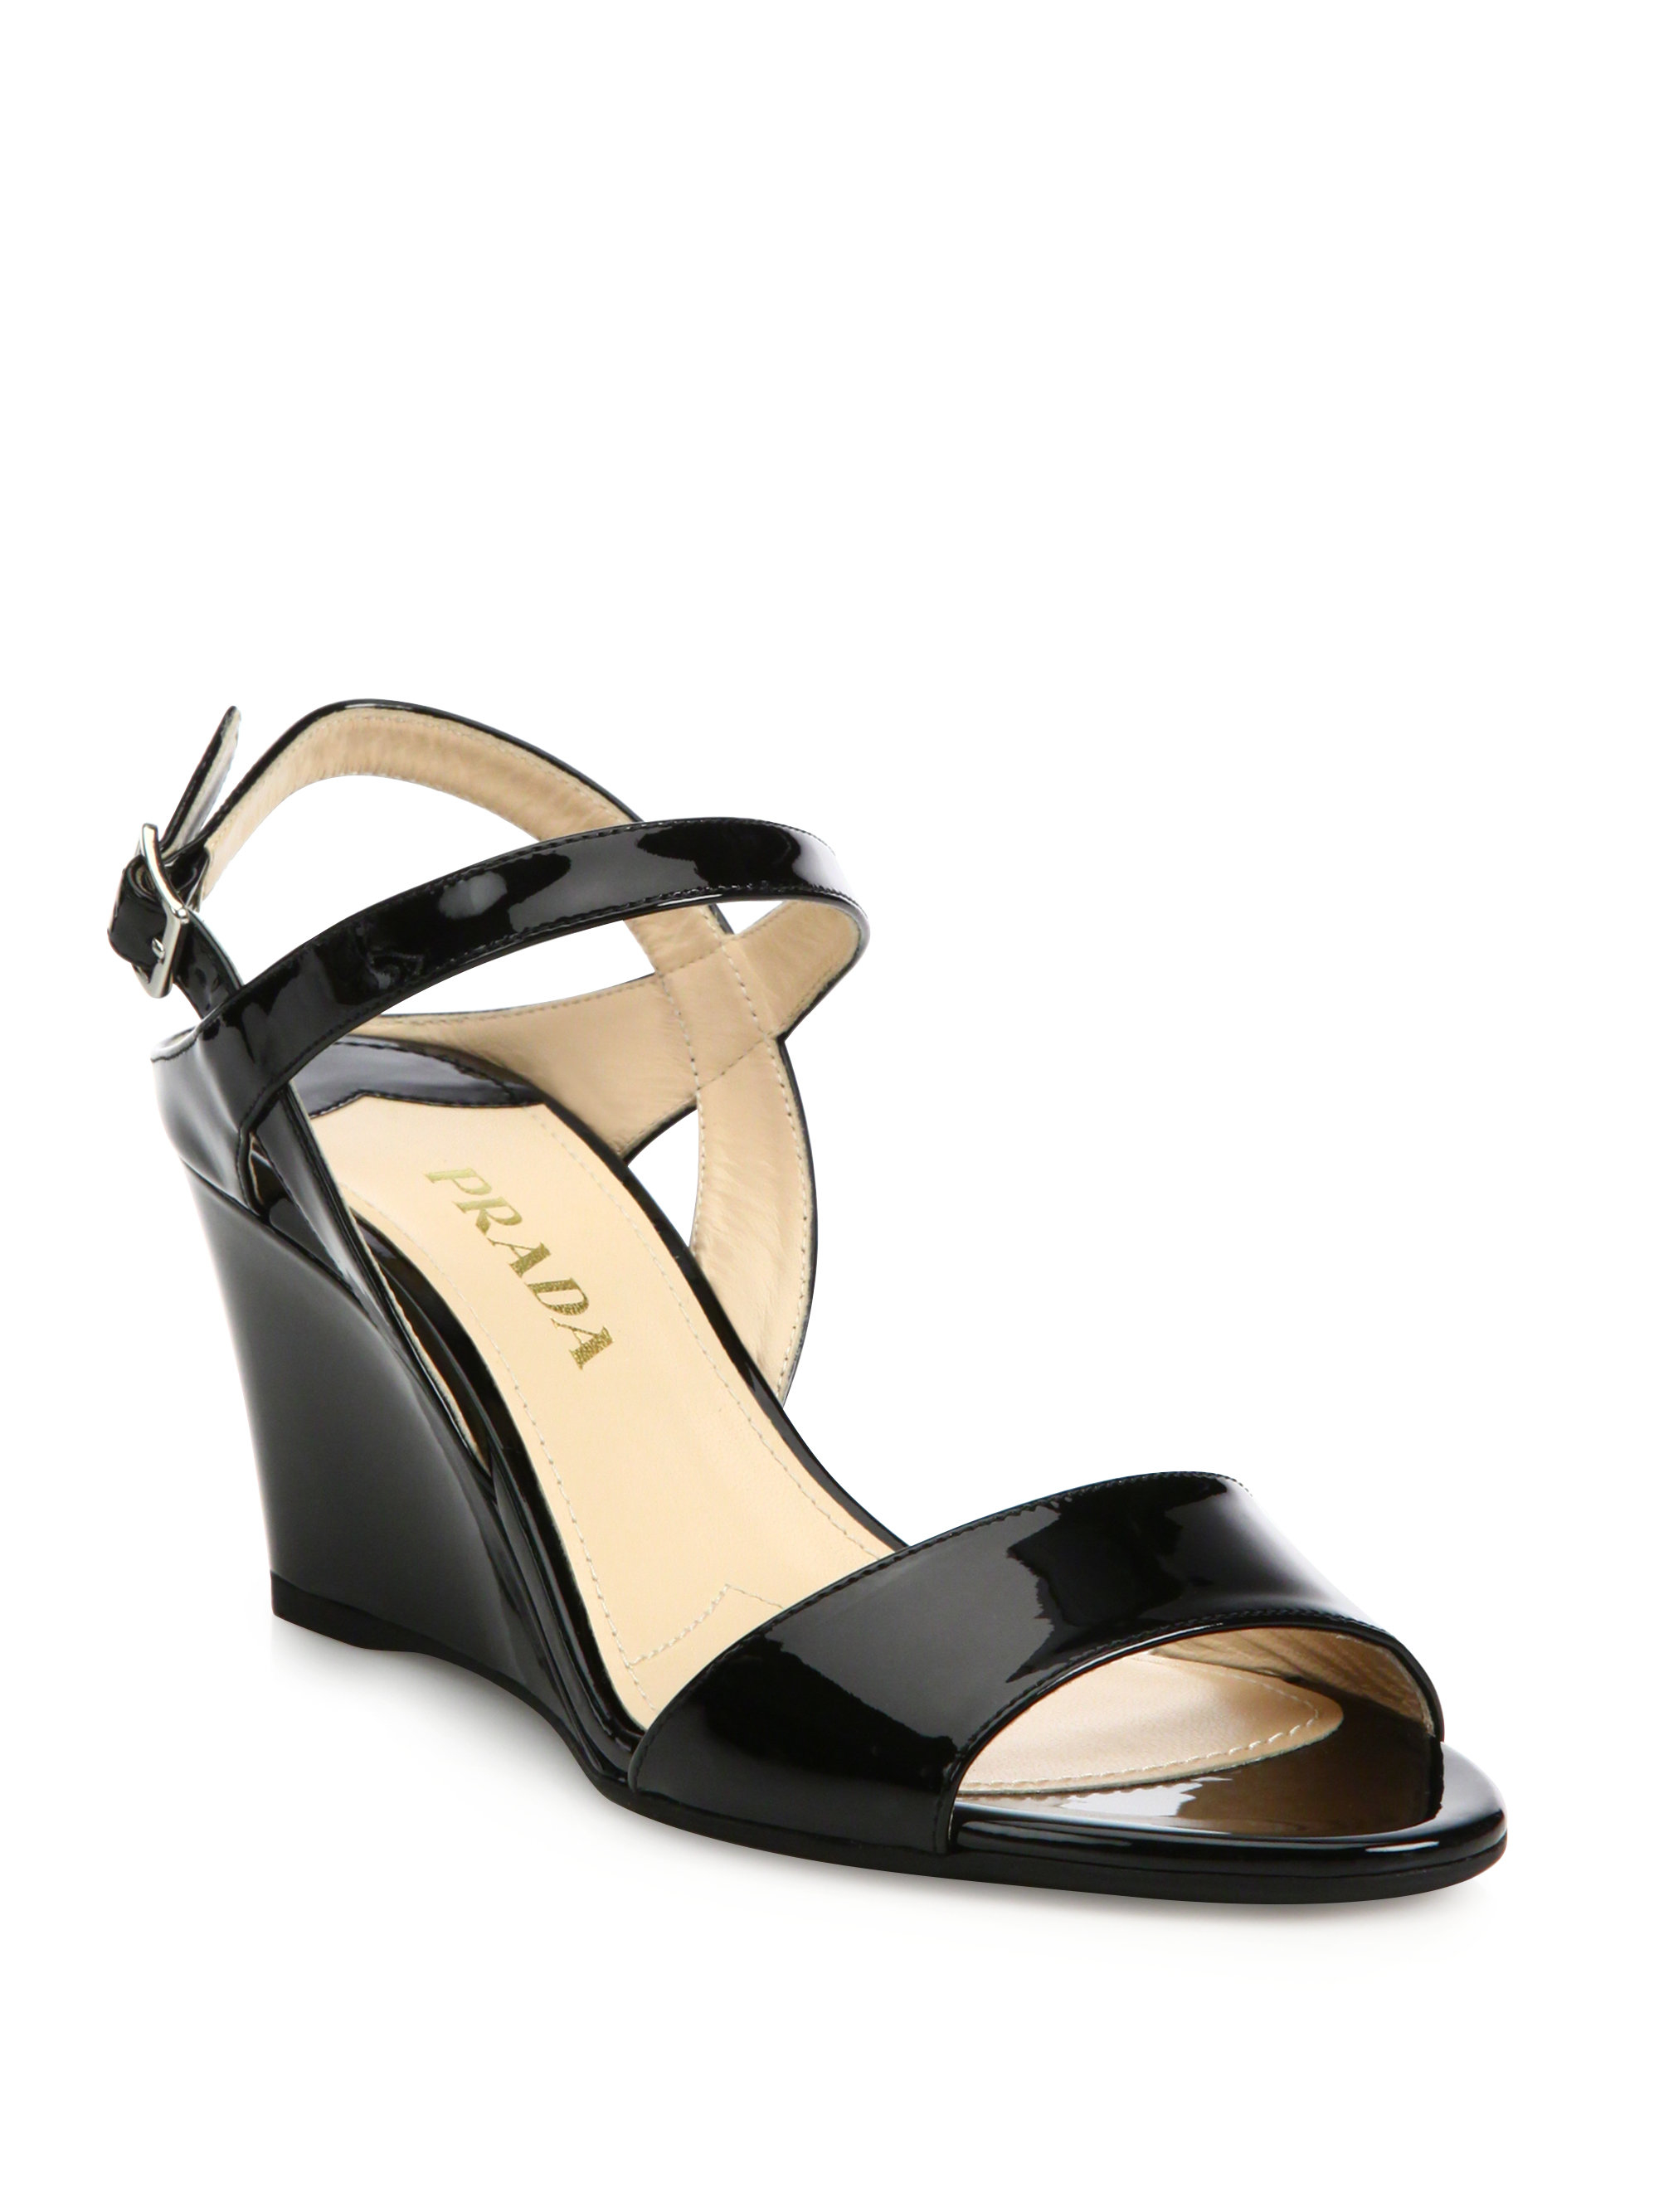 29c4d33e7f1e Lyst - Prada Patent Leather Ankle-strap Wedge Sandals in Black